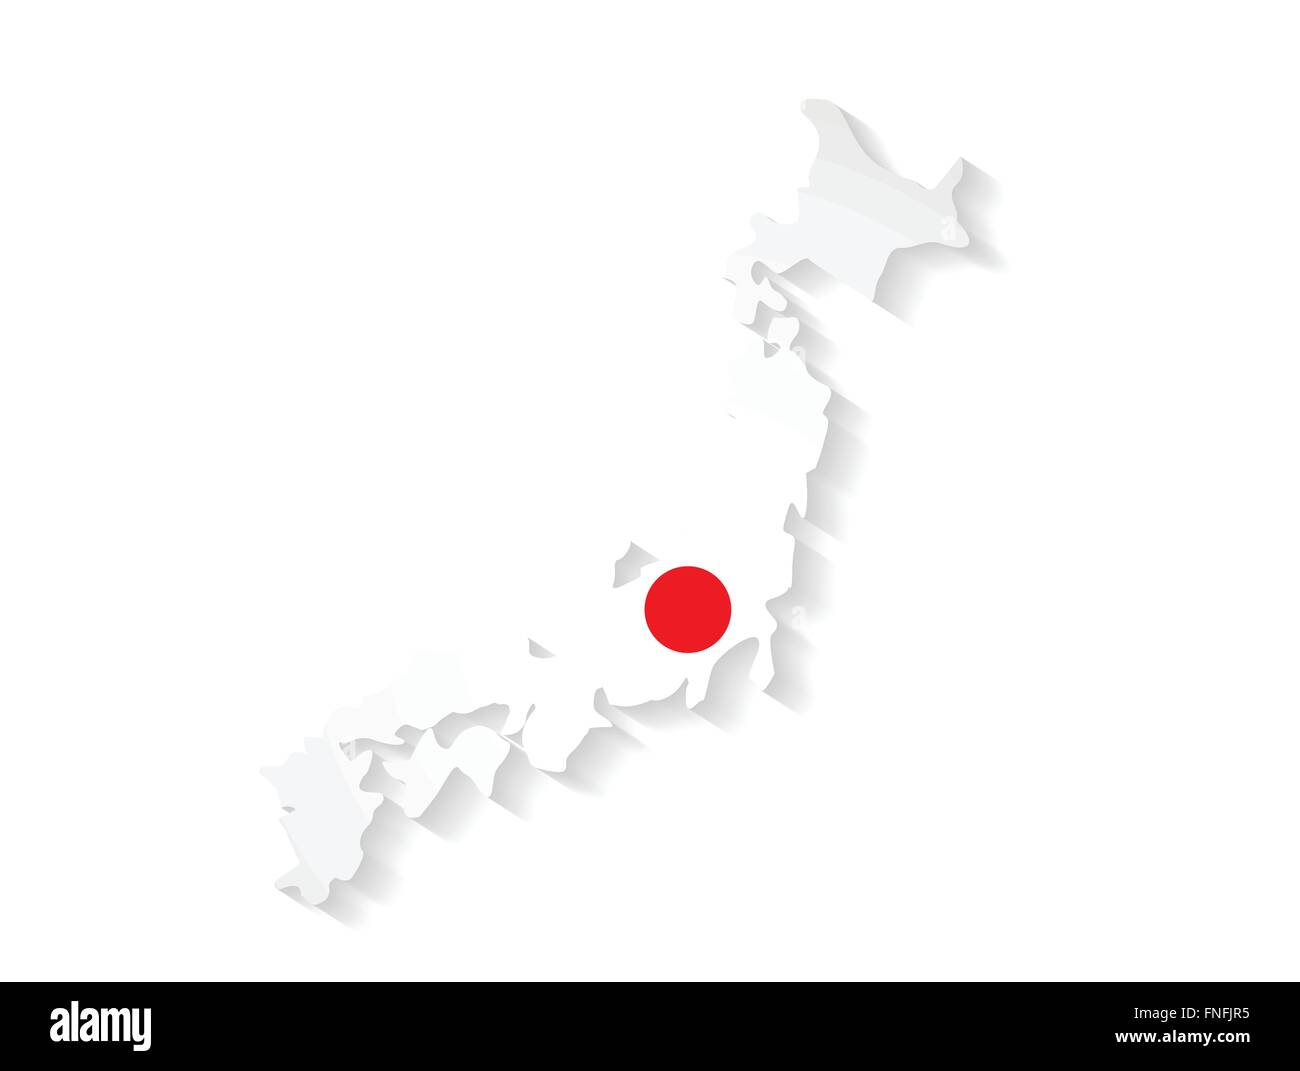 Japan Country Map With Flag And Shadow Effect Presentation Stock - Japan map flag